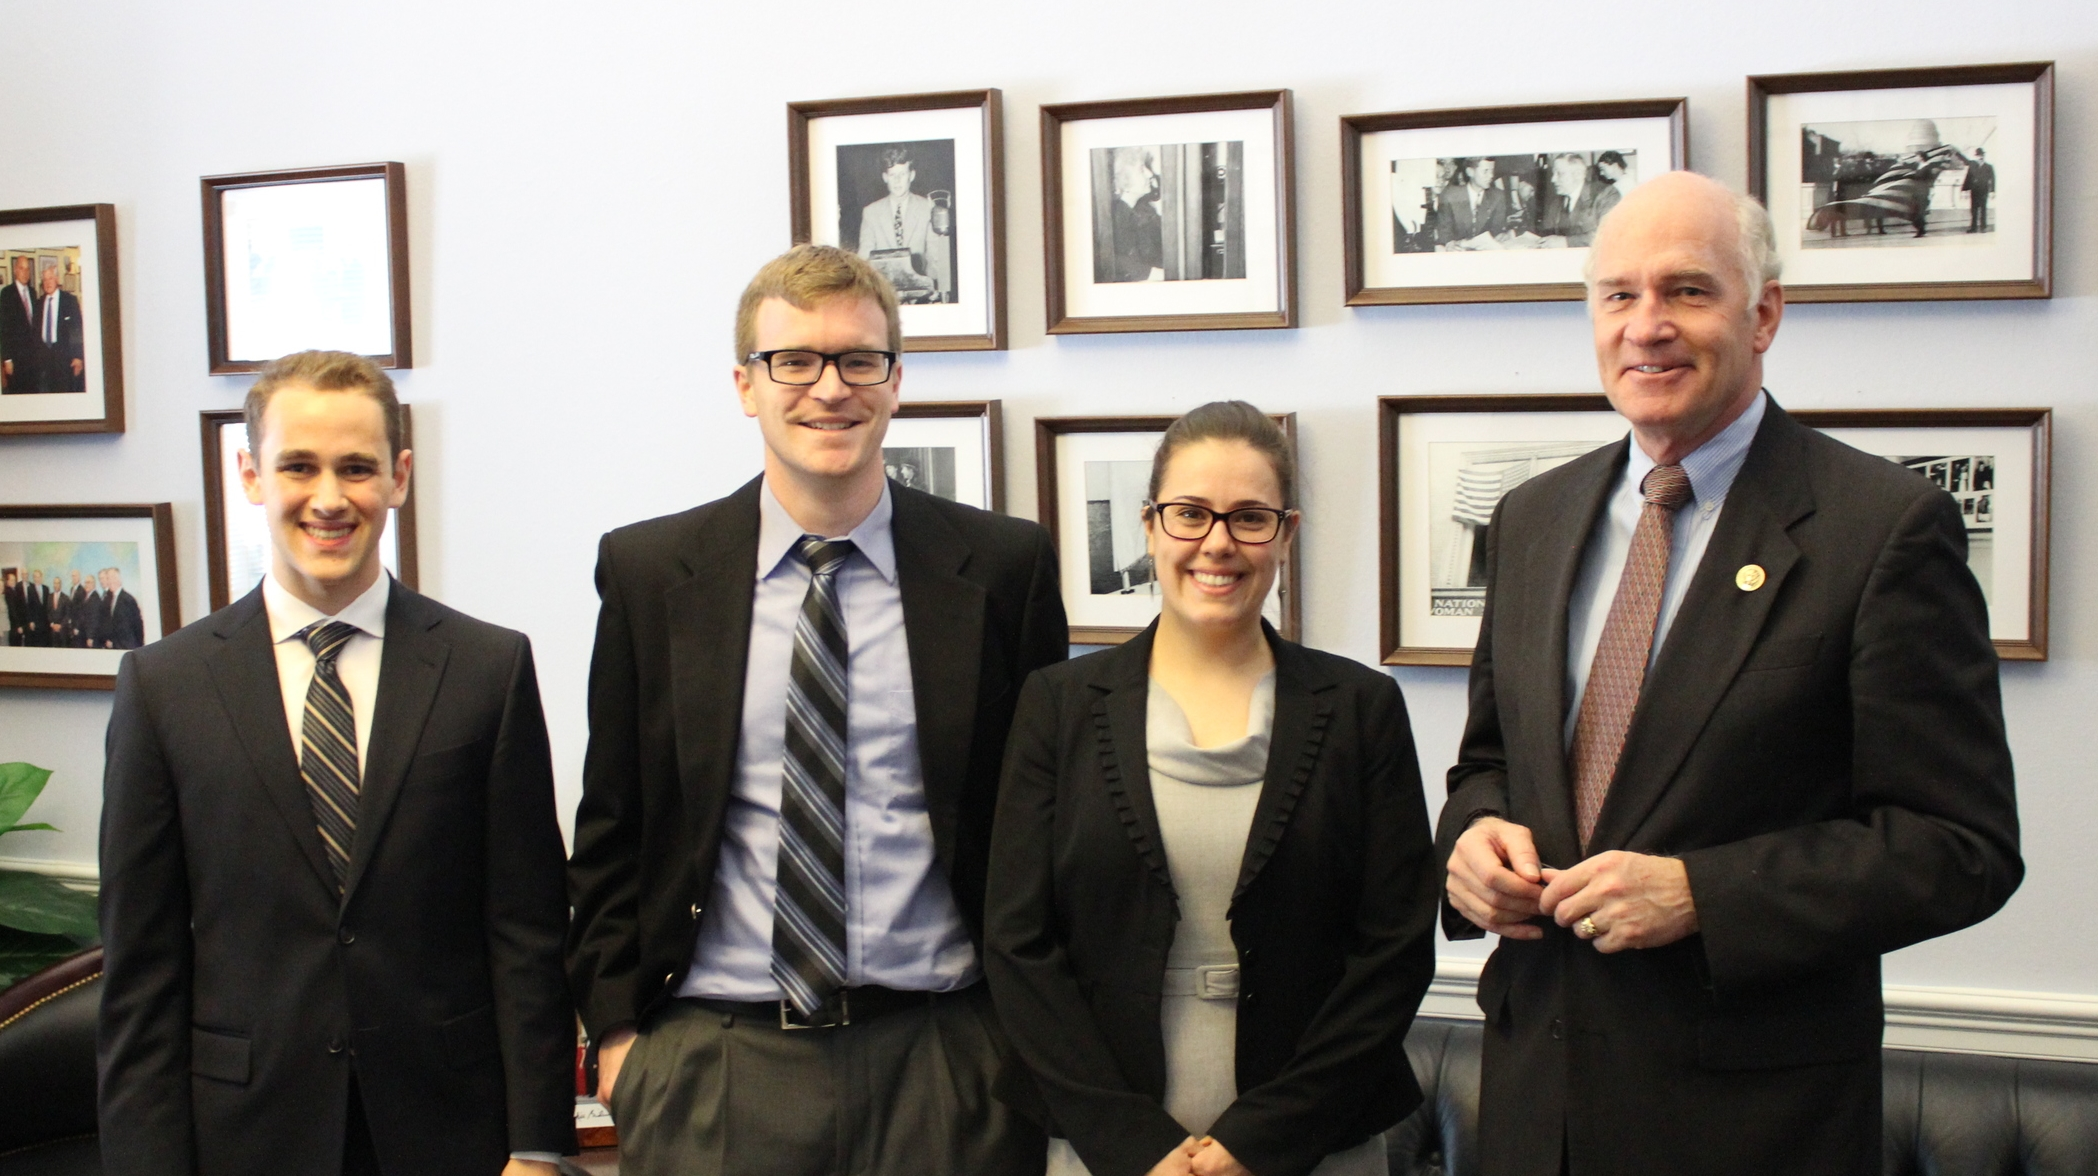 From left to right: Zane Markel, Scott Grindy, Ellie Bors, Representative Bill Keating.